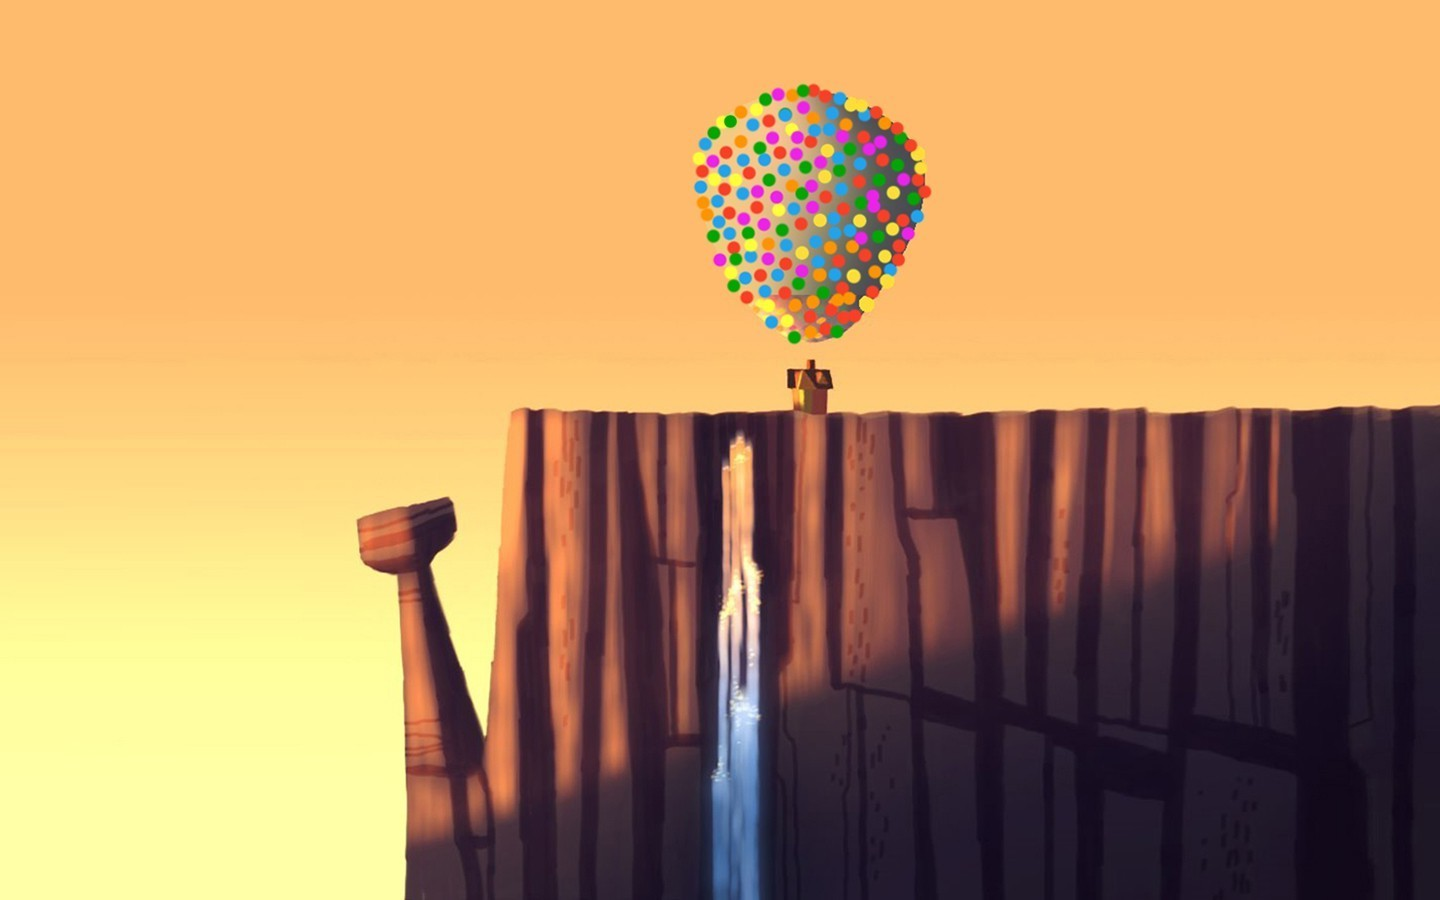 New 3d Love Wallpapers For Desktop Balloons Artwork Up Movie Wallpapers Hd Desktop And